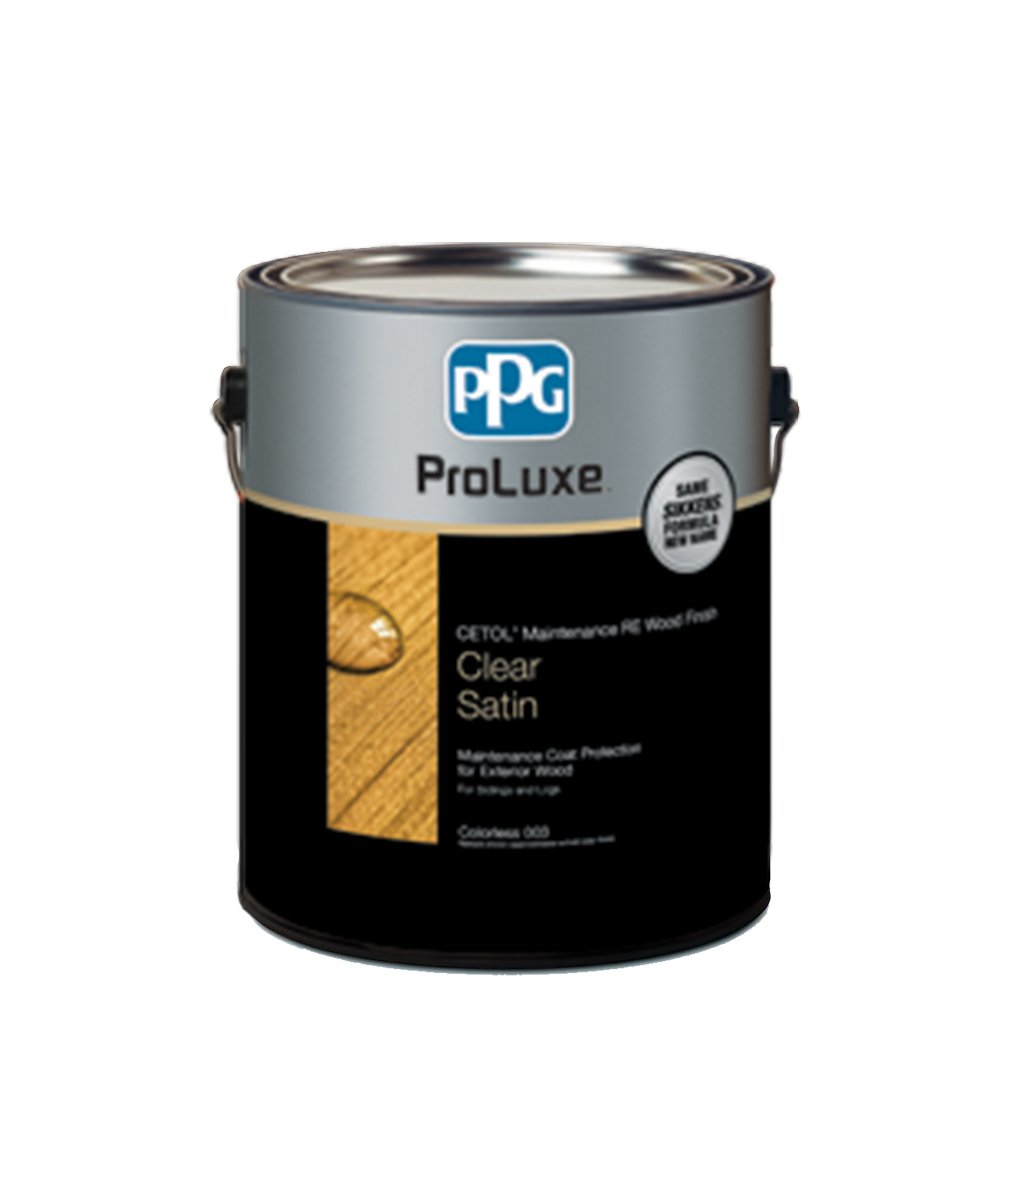 Proluxe maintenance coat RE exterior stain available at Clement's Paint in Austin, TX.